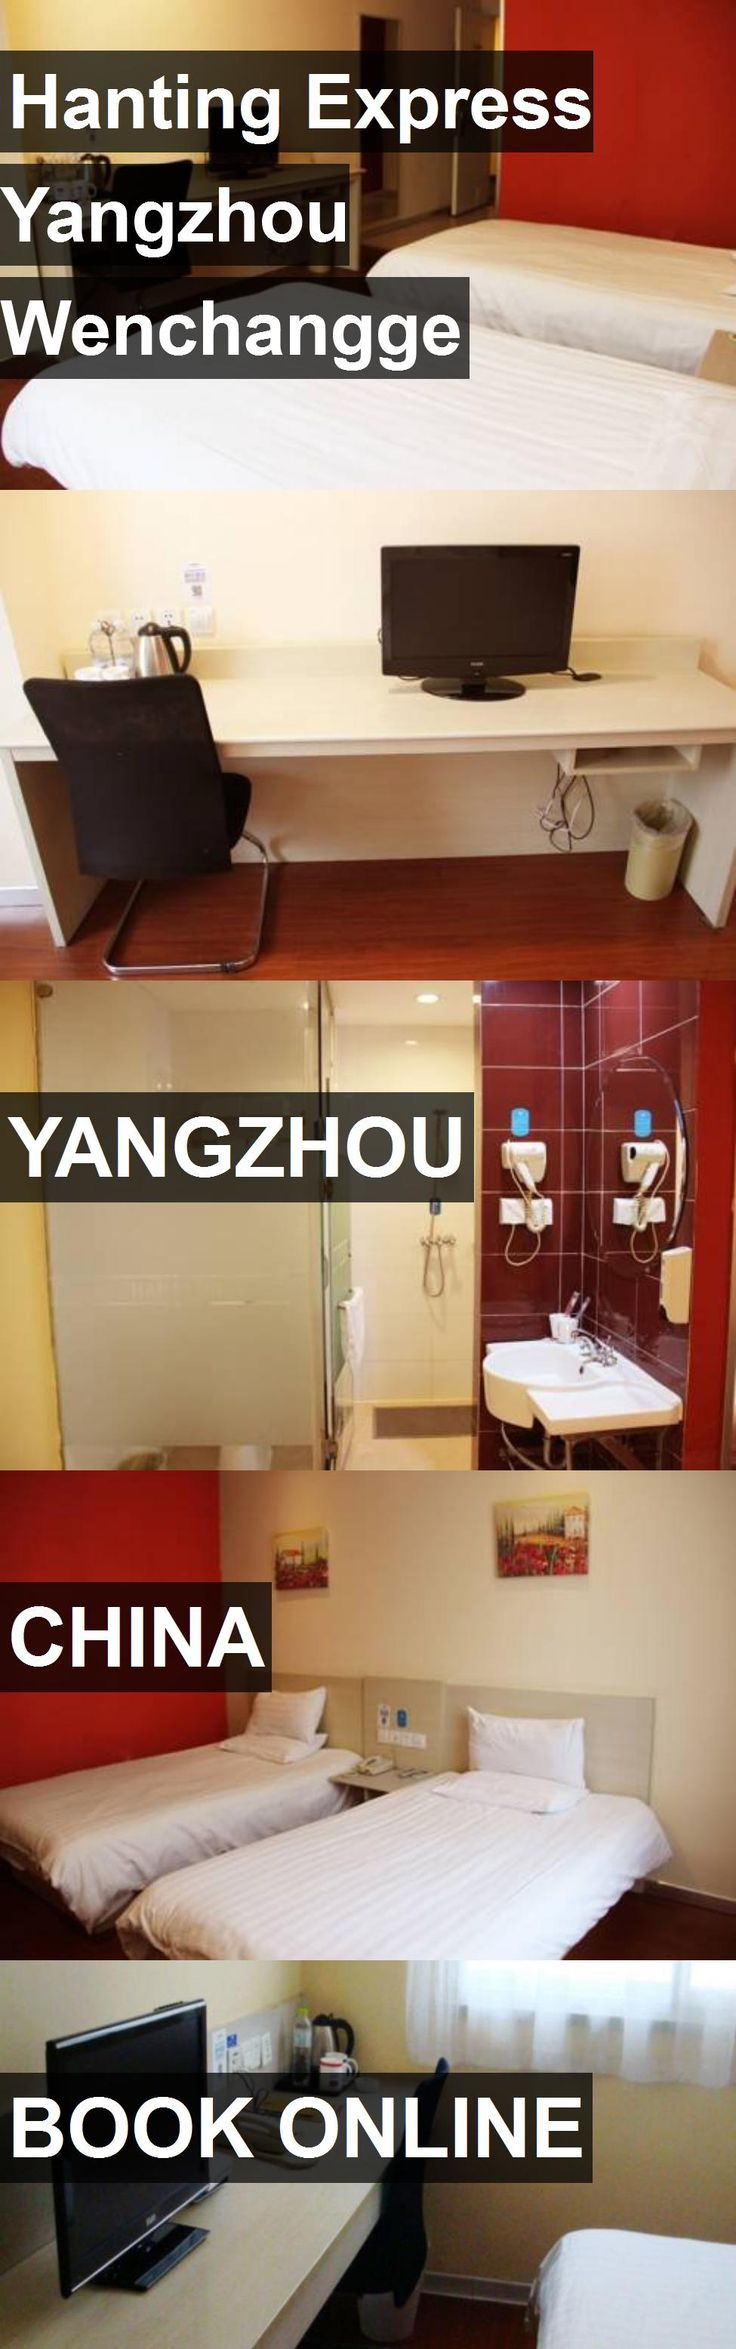 Hotel Hanting Express Yangzhou Wenchangge in Yangzhou, China. For more information, photos, reviews and best prices please follow the link. #China #Yangzhou #travel #vacation #hotel